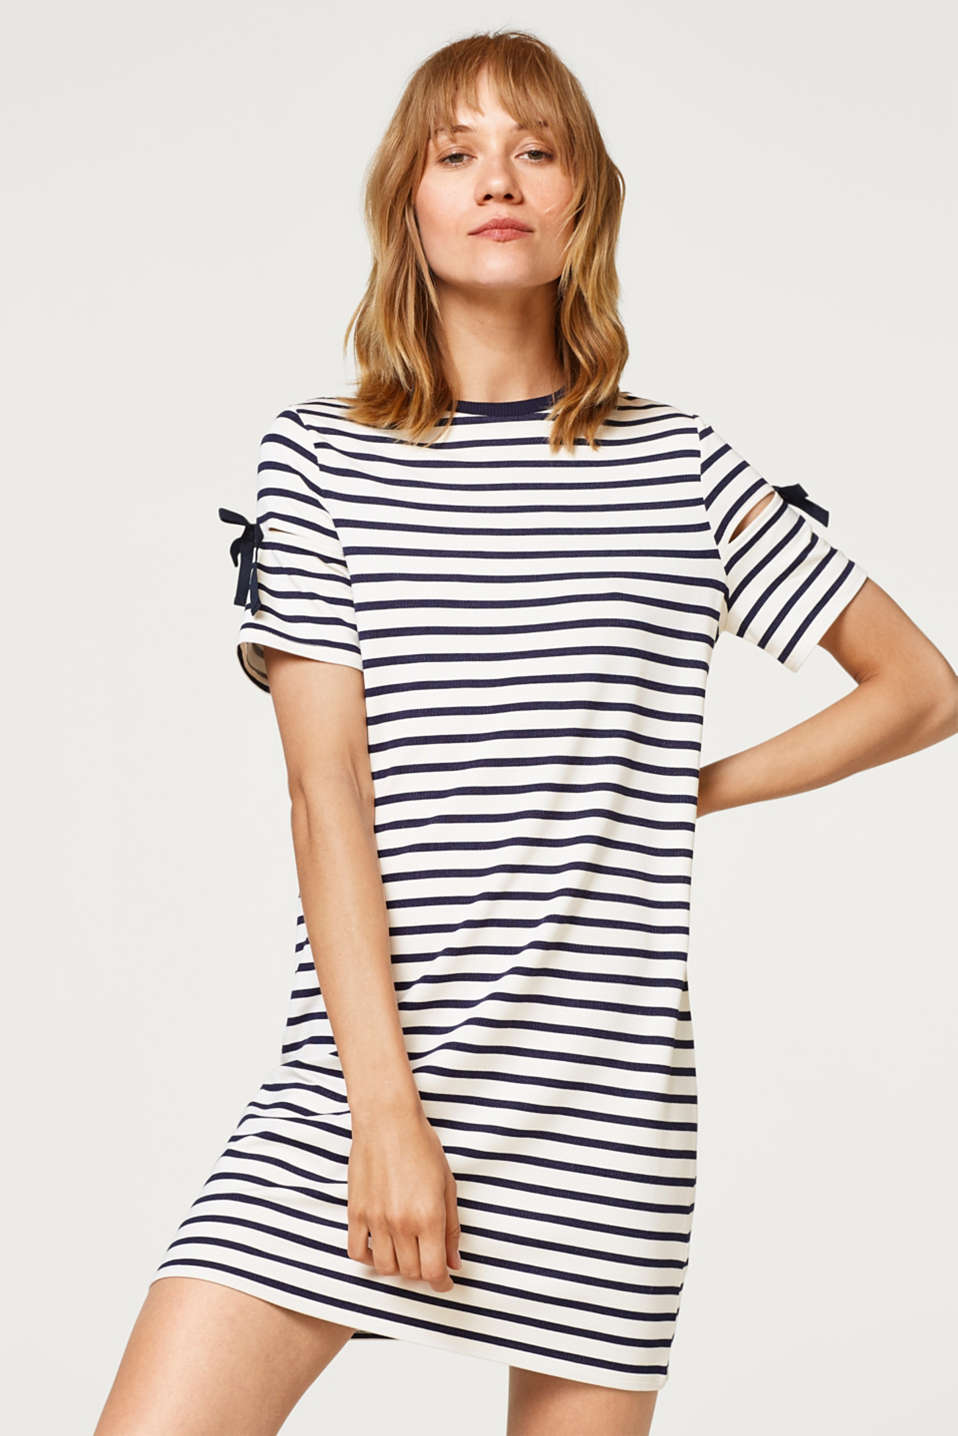 edc - Soft sweatshirt dress with stripes and cut-out sleeves